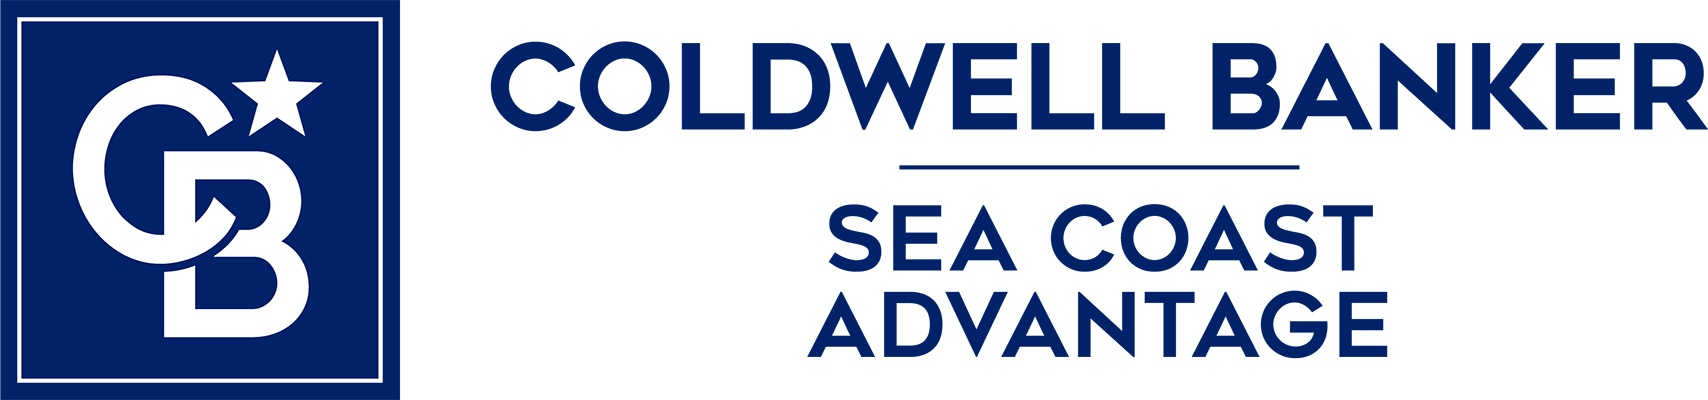 Diane Bernatz - Coldwell Banker Sea Coast Advantage Realty